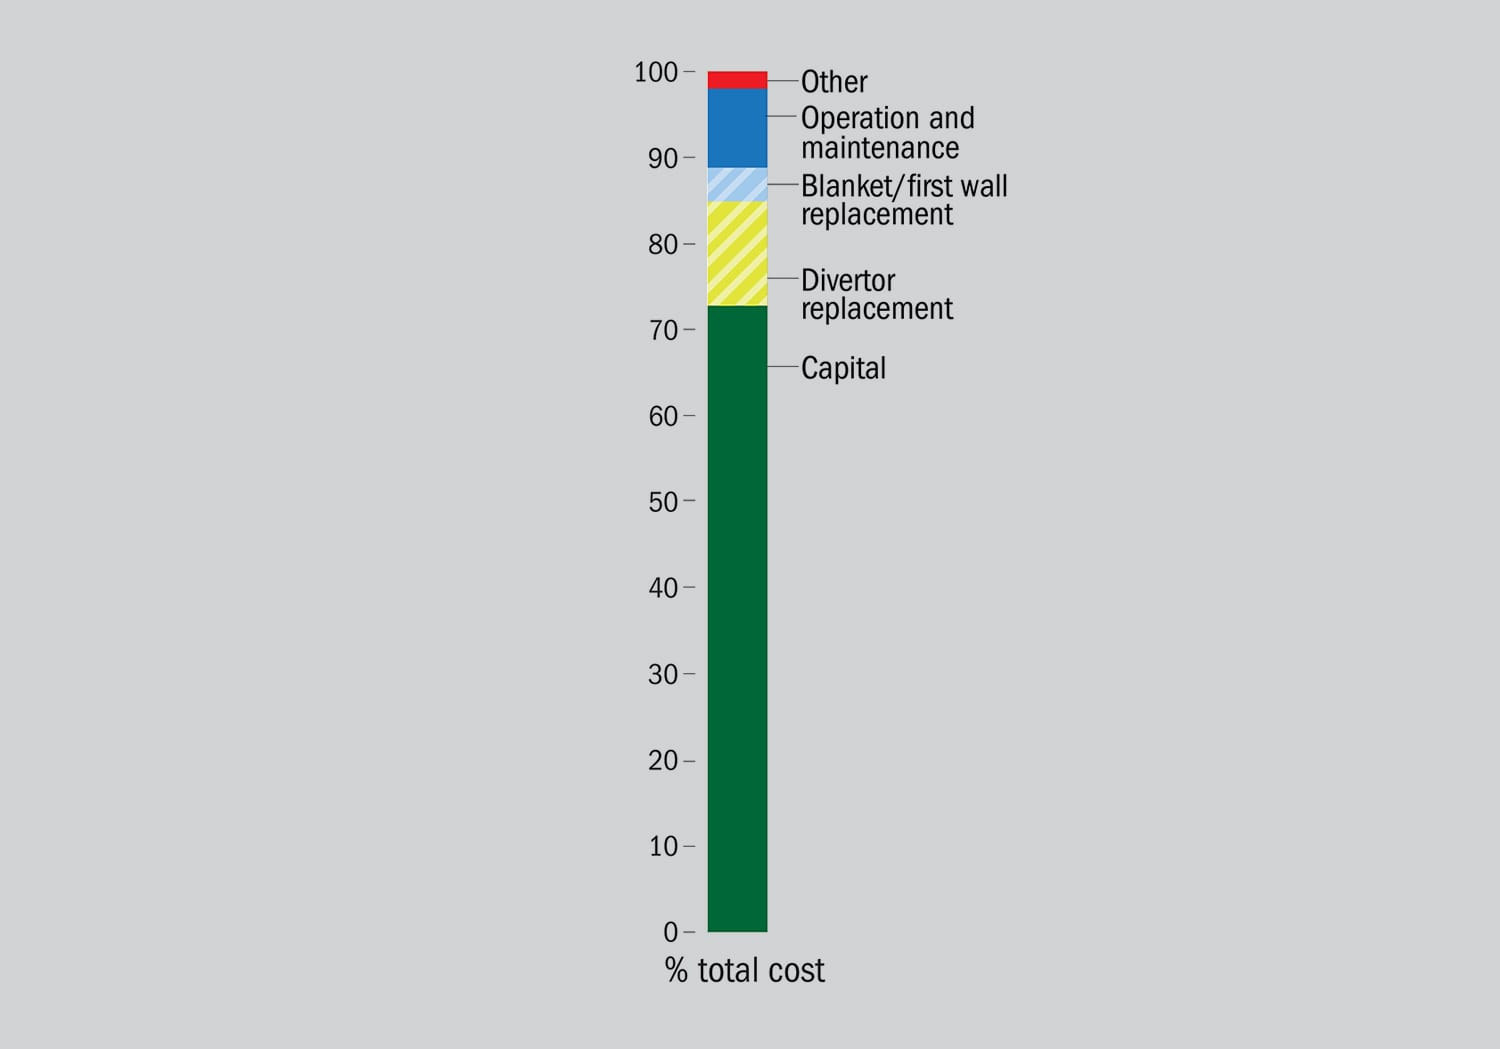 Components of the total cost of electricity produced by a magnetic confinement fusion reactor, shown as a percent of total cost. The two components shown with stripes are costs for replacement of critical elements of the reactor whose lifetime, due to neutron bombardment, could be much shorter than the rest of the reactor. Source: [2].